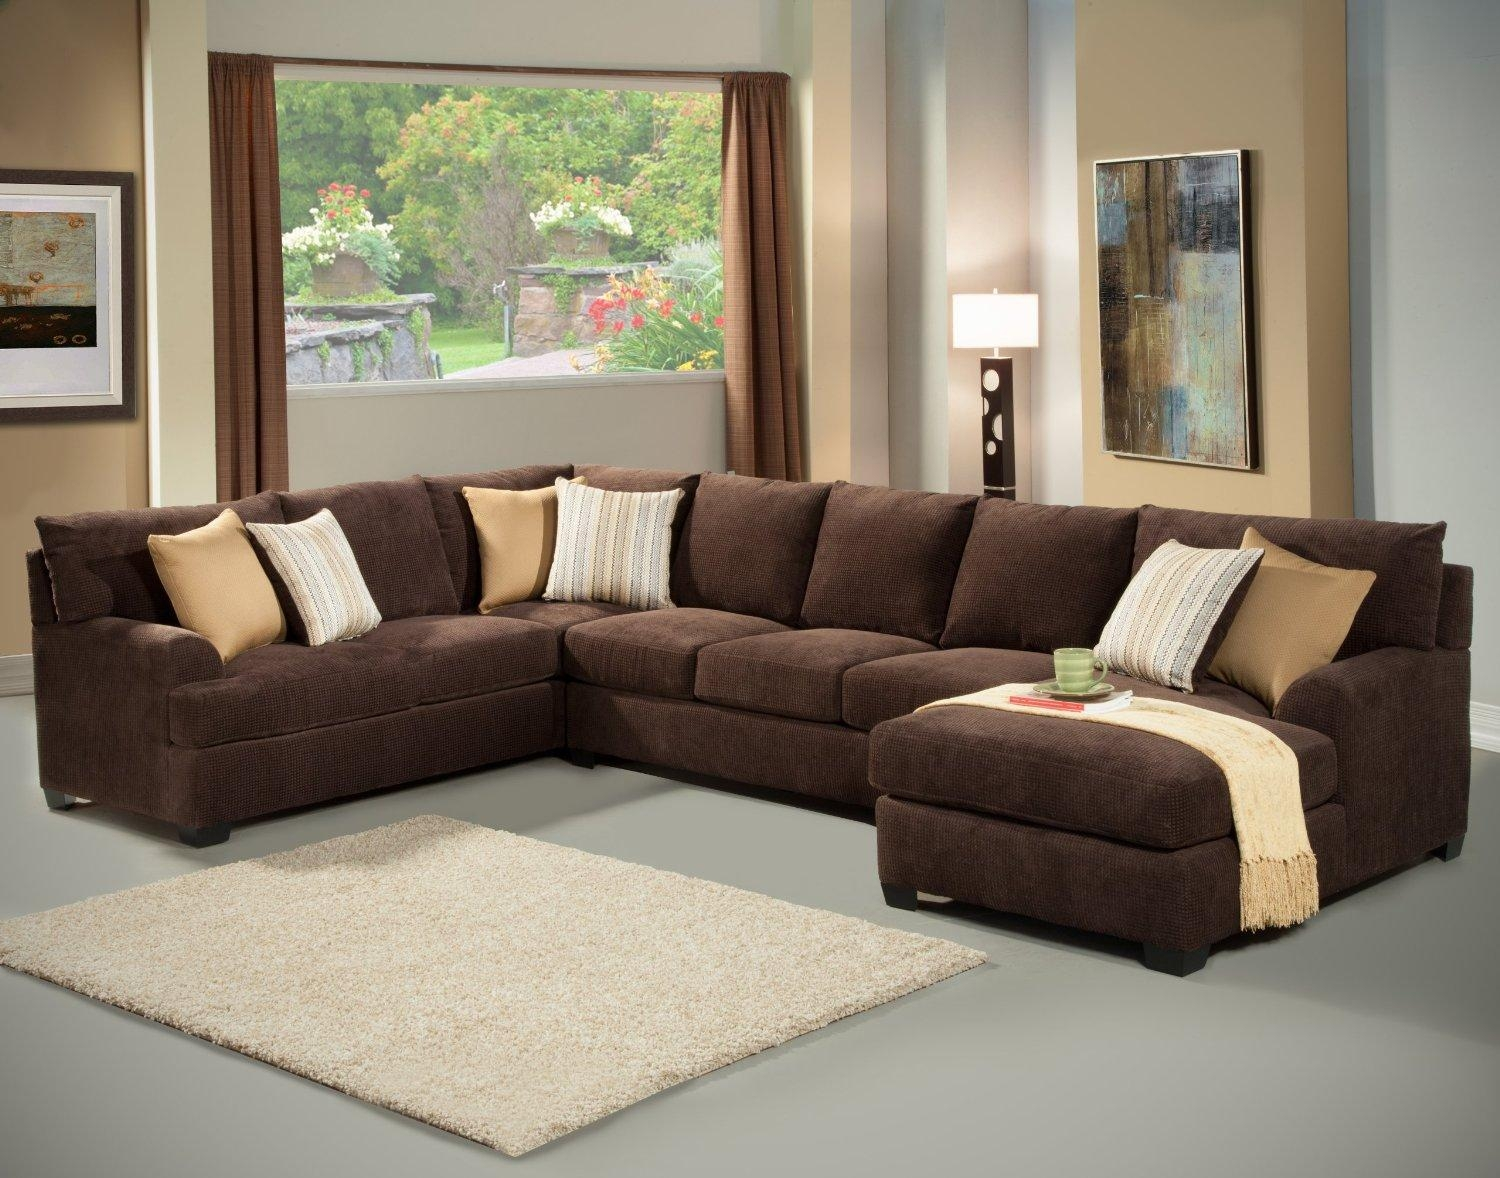 Furniture Home: Trend Microfiber Sectional Sofa With Chaise 43 For Large Microfiber Sectional (View 2 of 20)